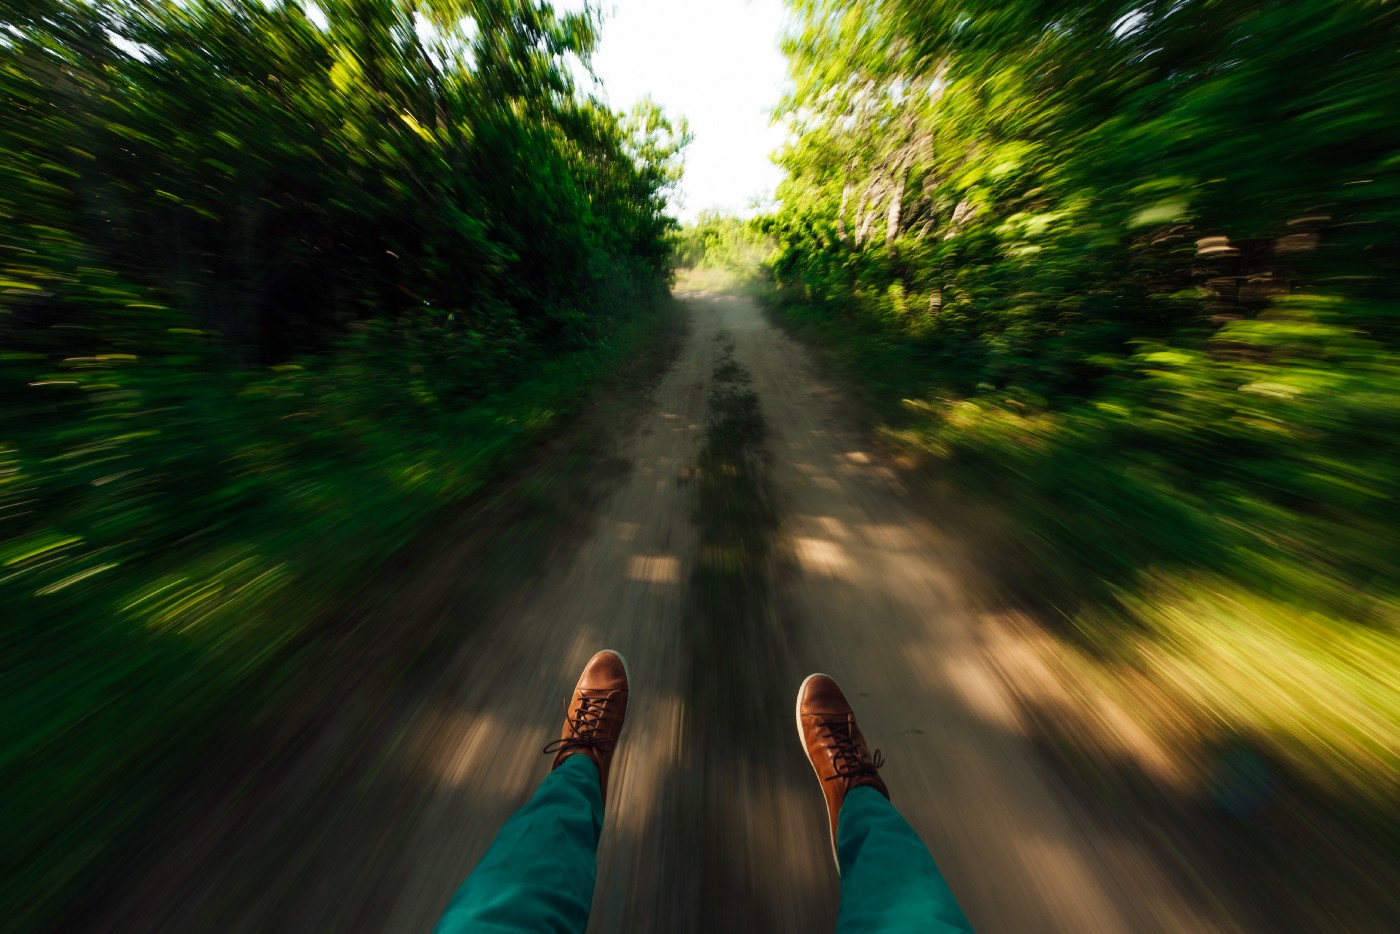 A man's feet as he slips swiftly down a path in the woods